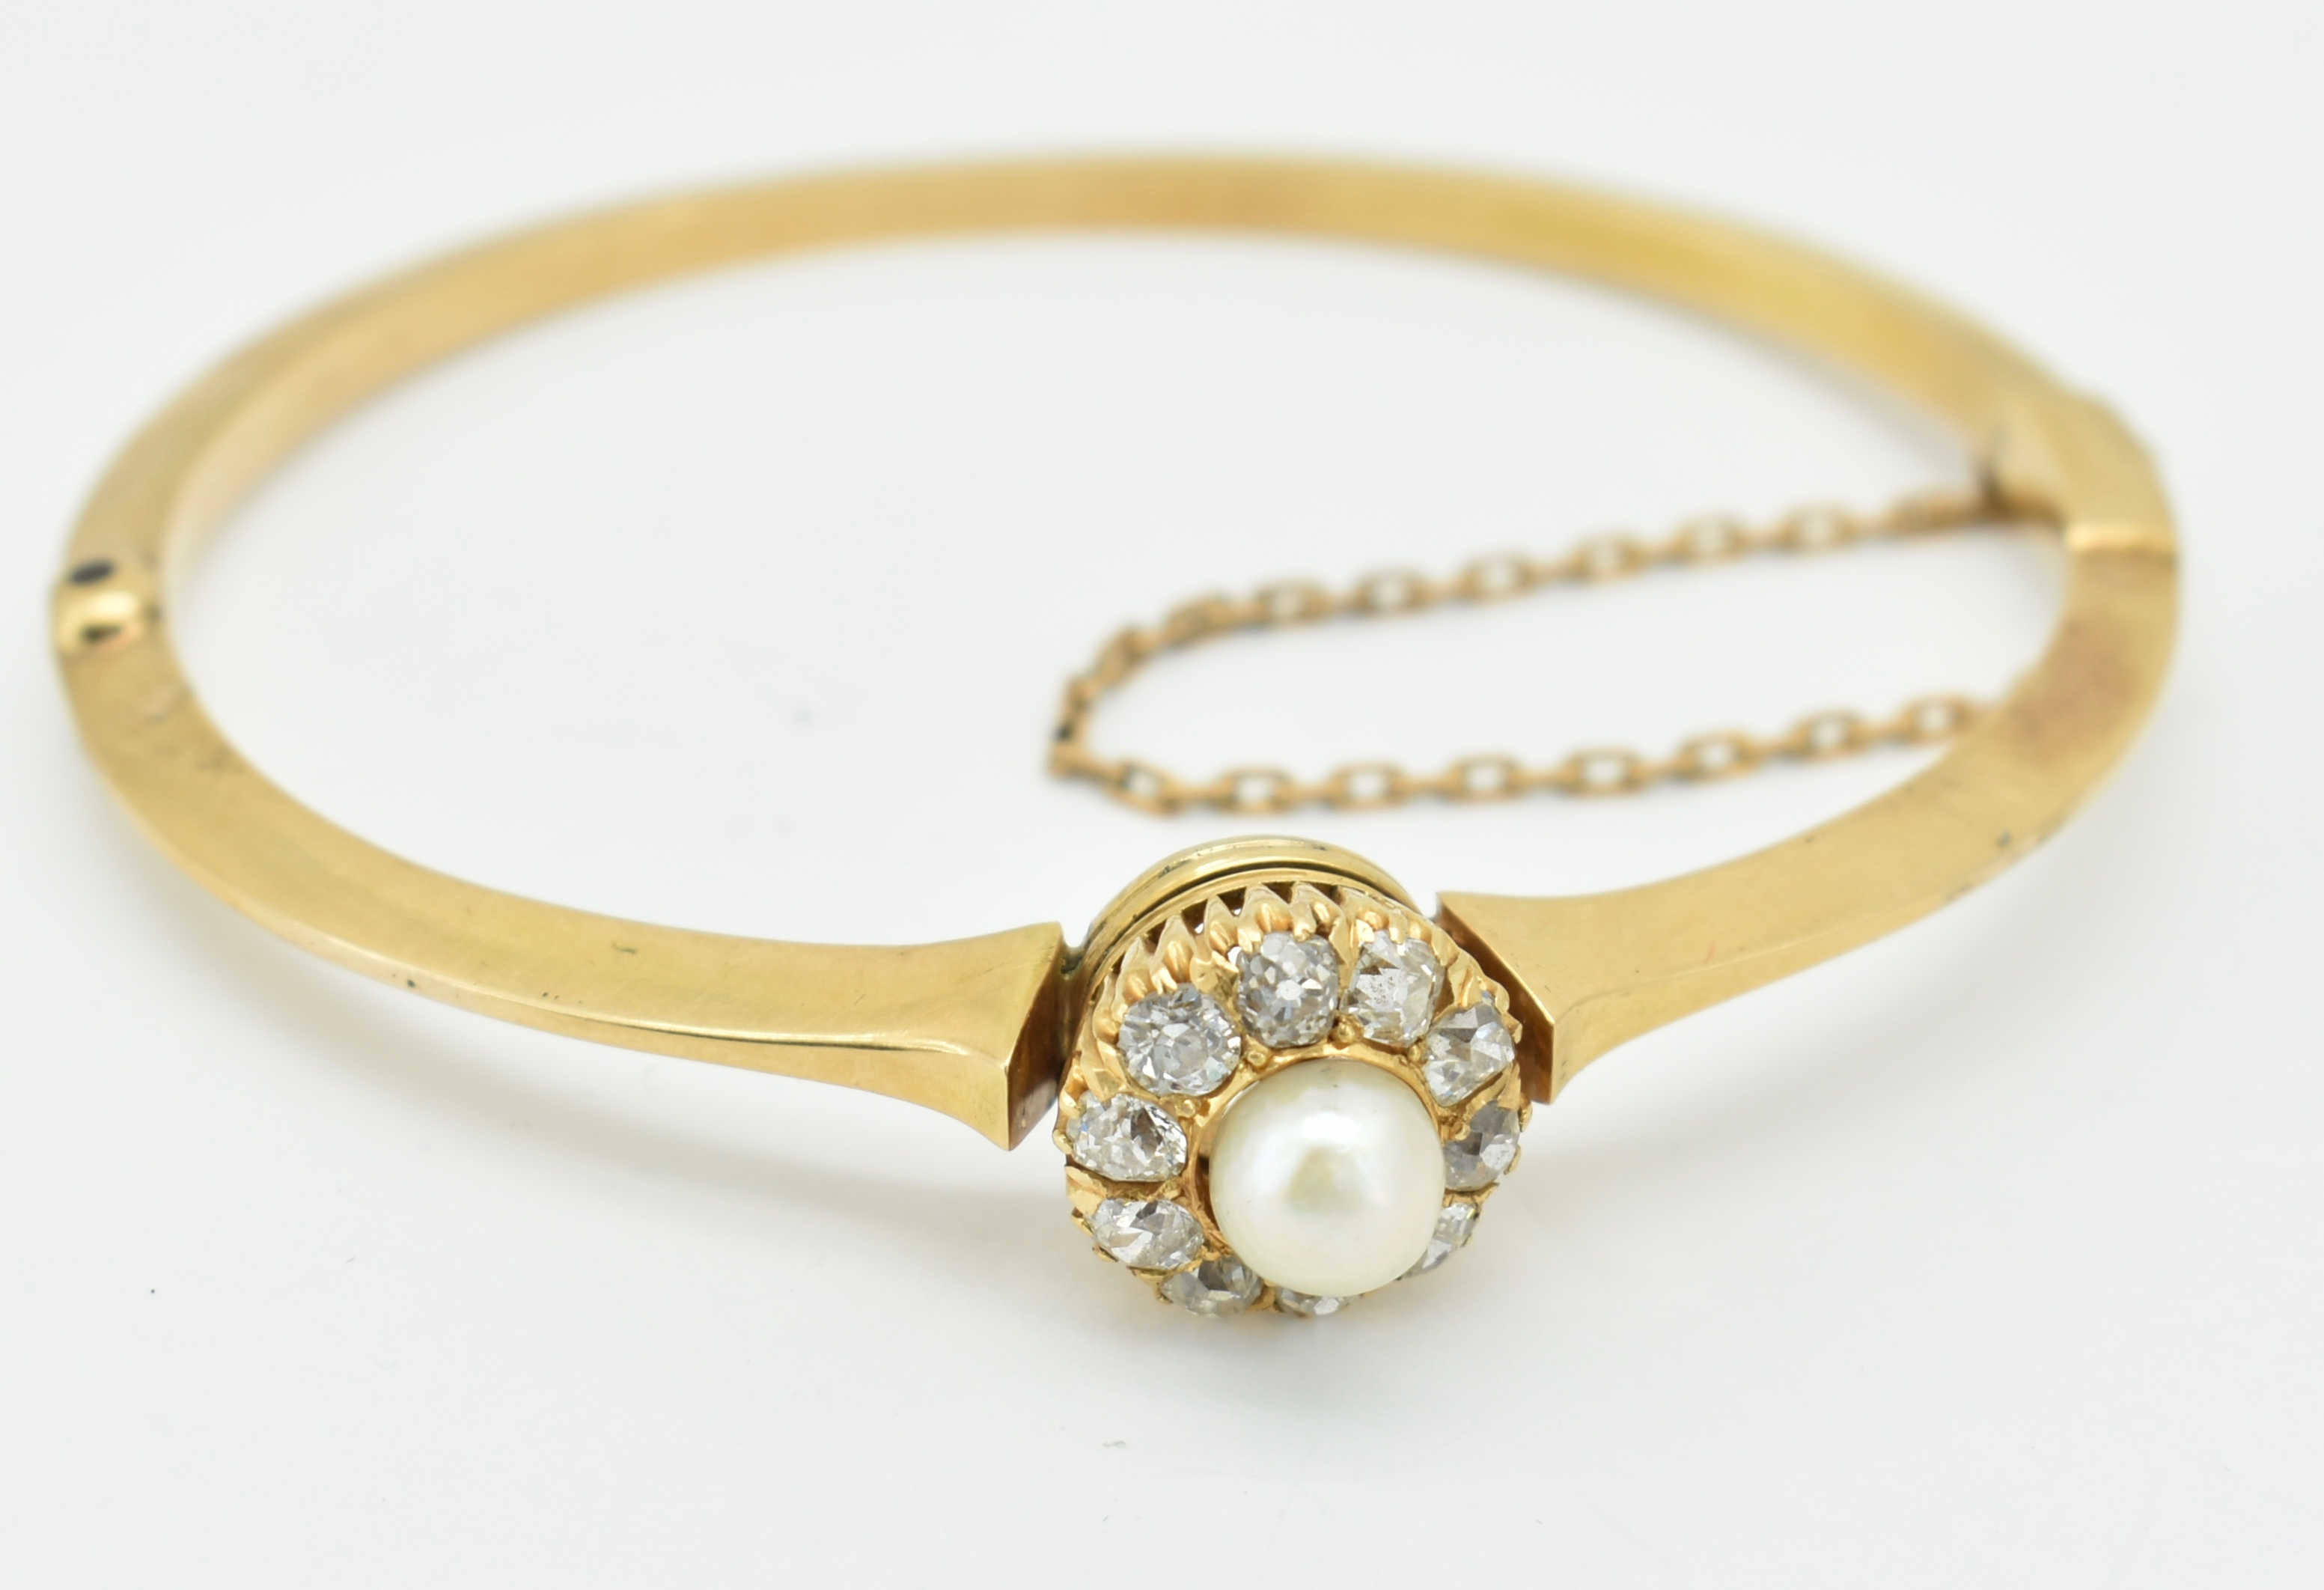 FRENCH 18CT GOLD DIAMOND & PEARL HINGED BANGLE - Image 2 of 6